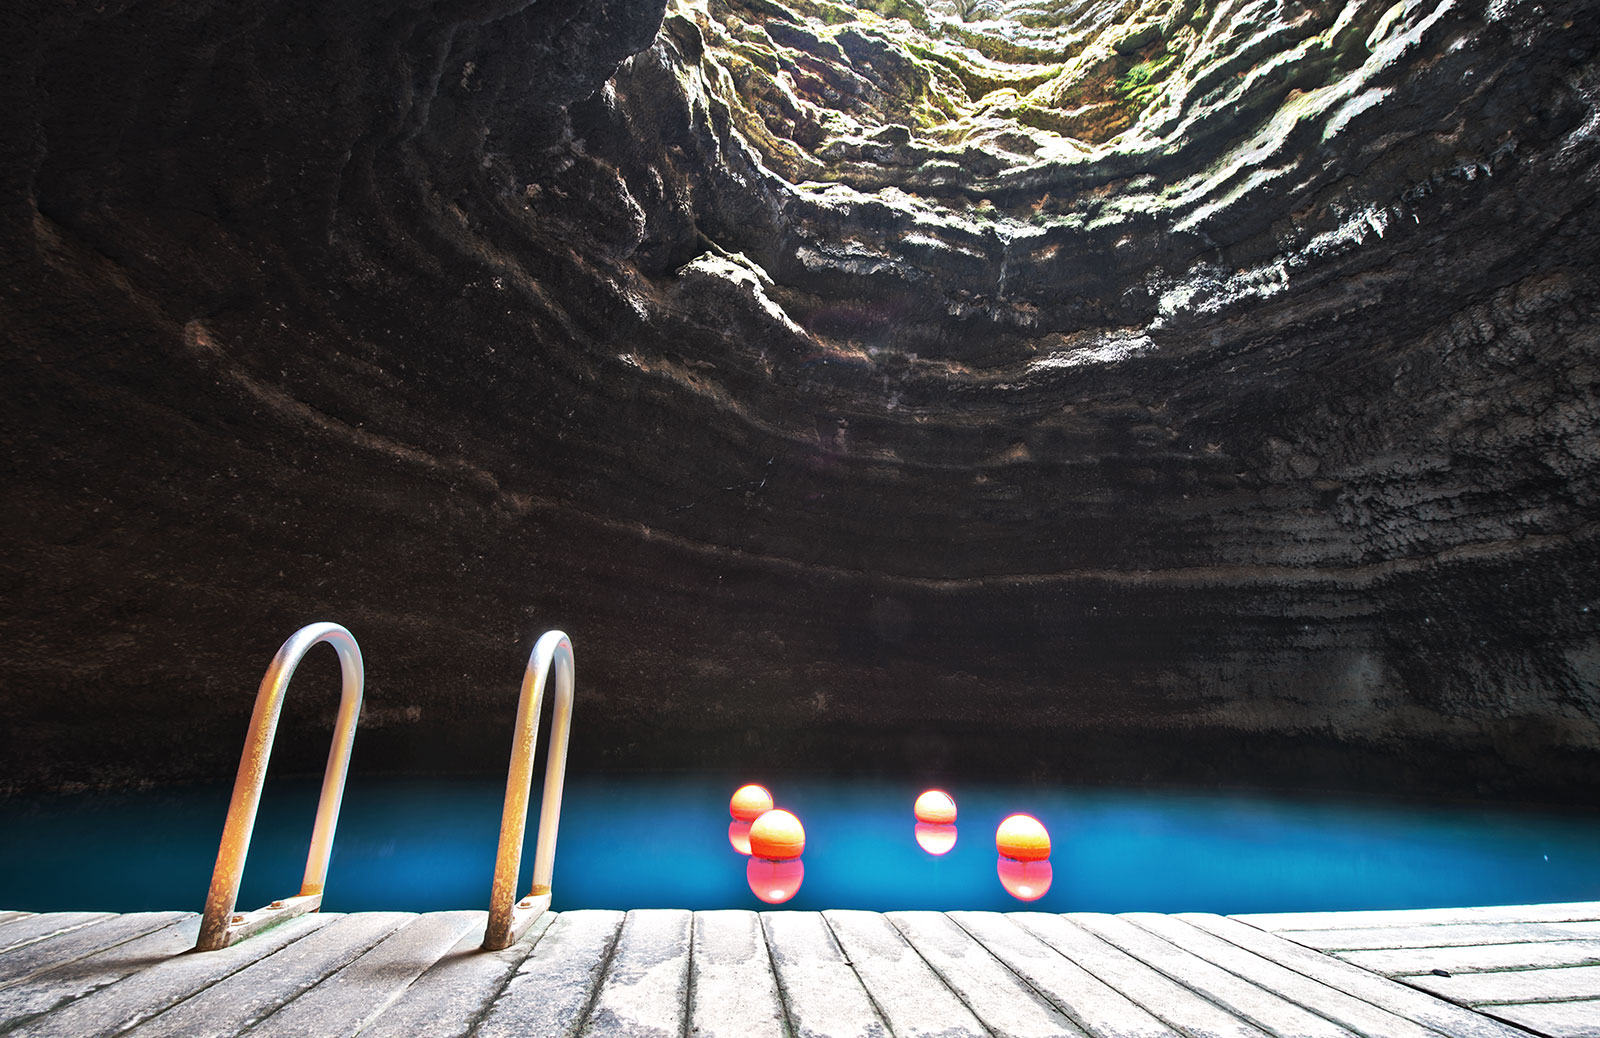 10 Best Natural Swimming Holes In The Us